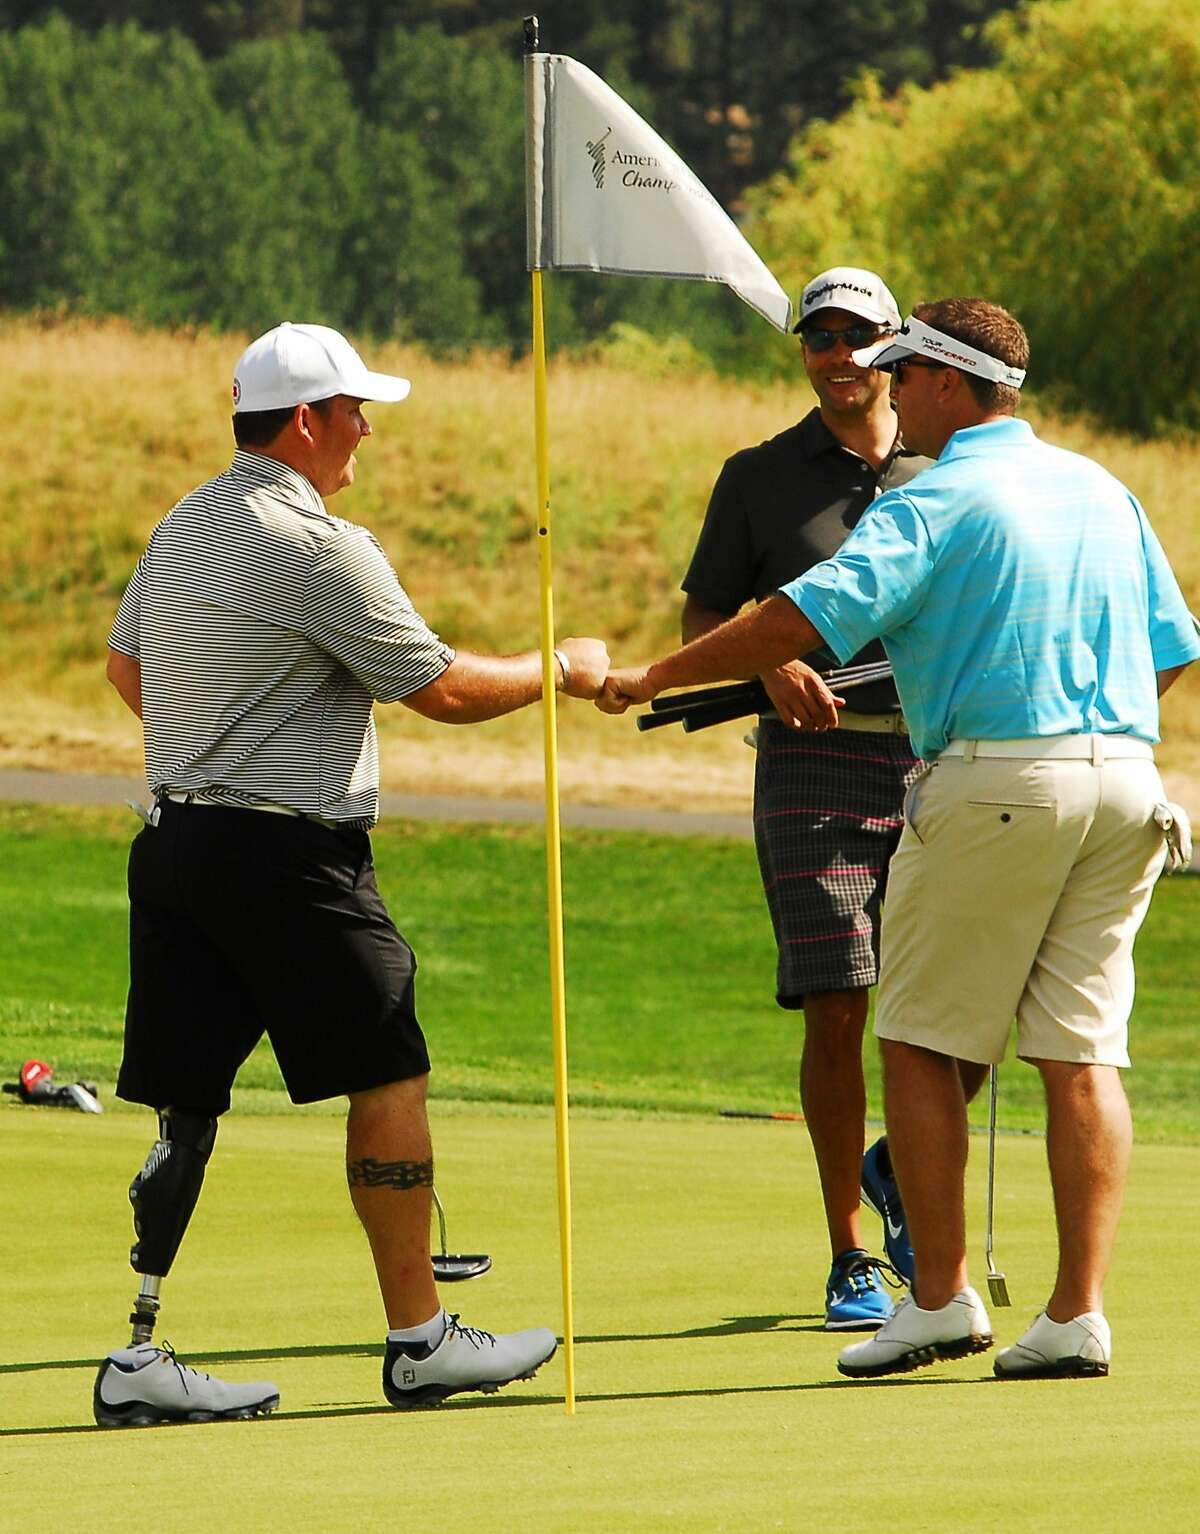 Wounded Warrior Chad Pfeifer gets a congratulatory fist bump from teammates during the Lake Tahoe Celebrity-Am on Tuesday July 15, 2014 in Stateline, Nevada.